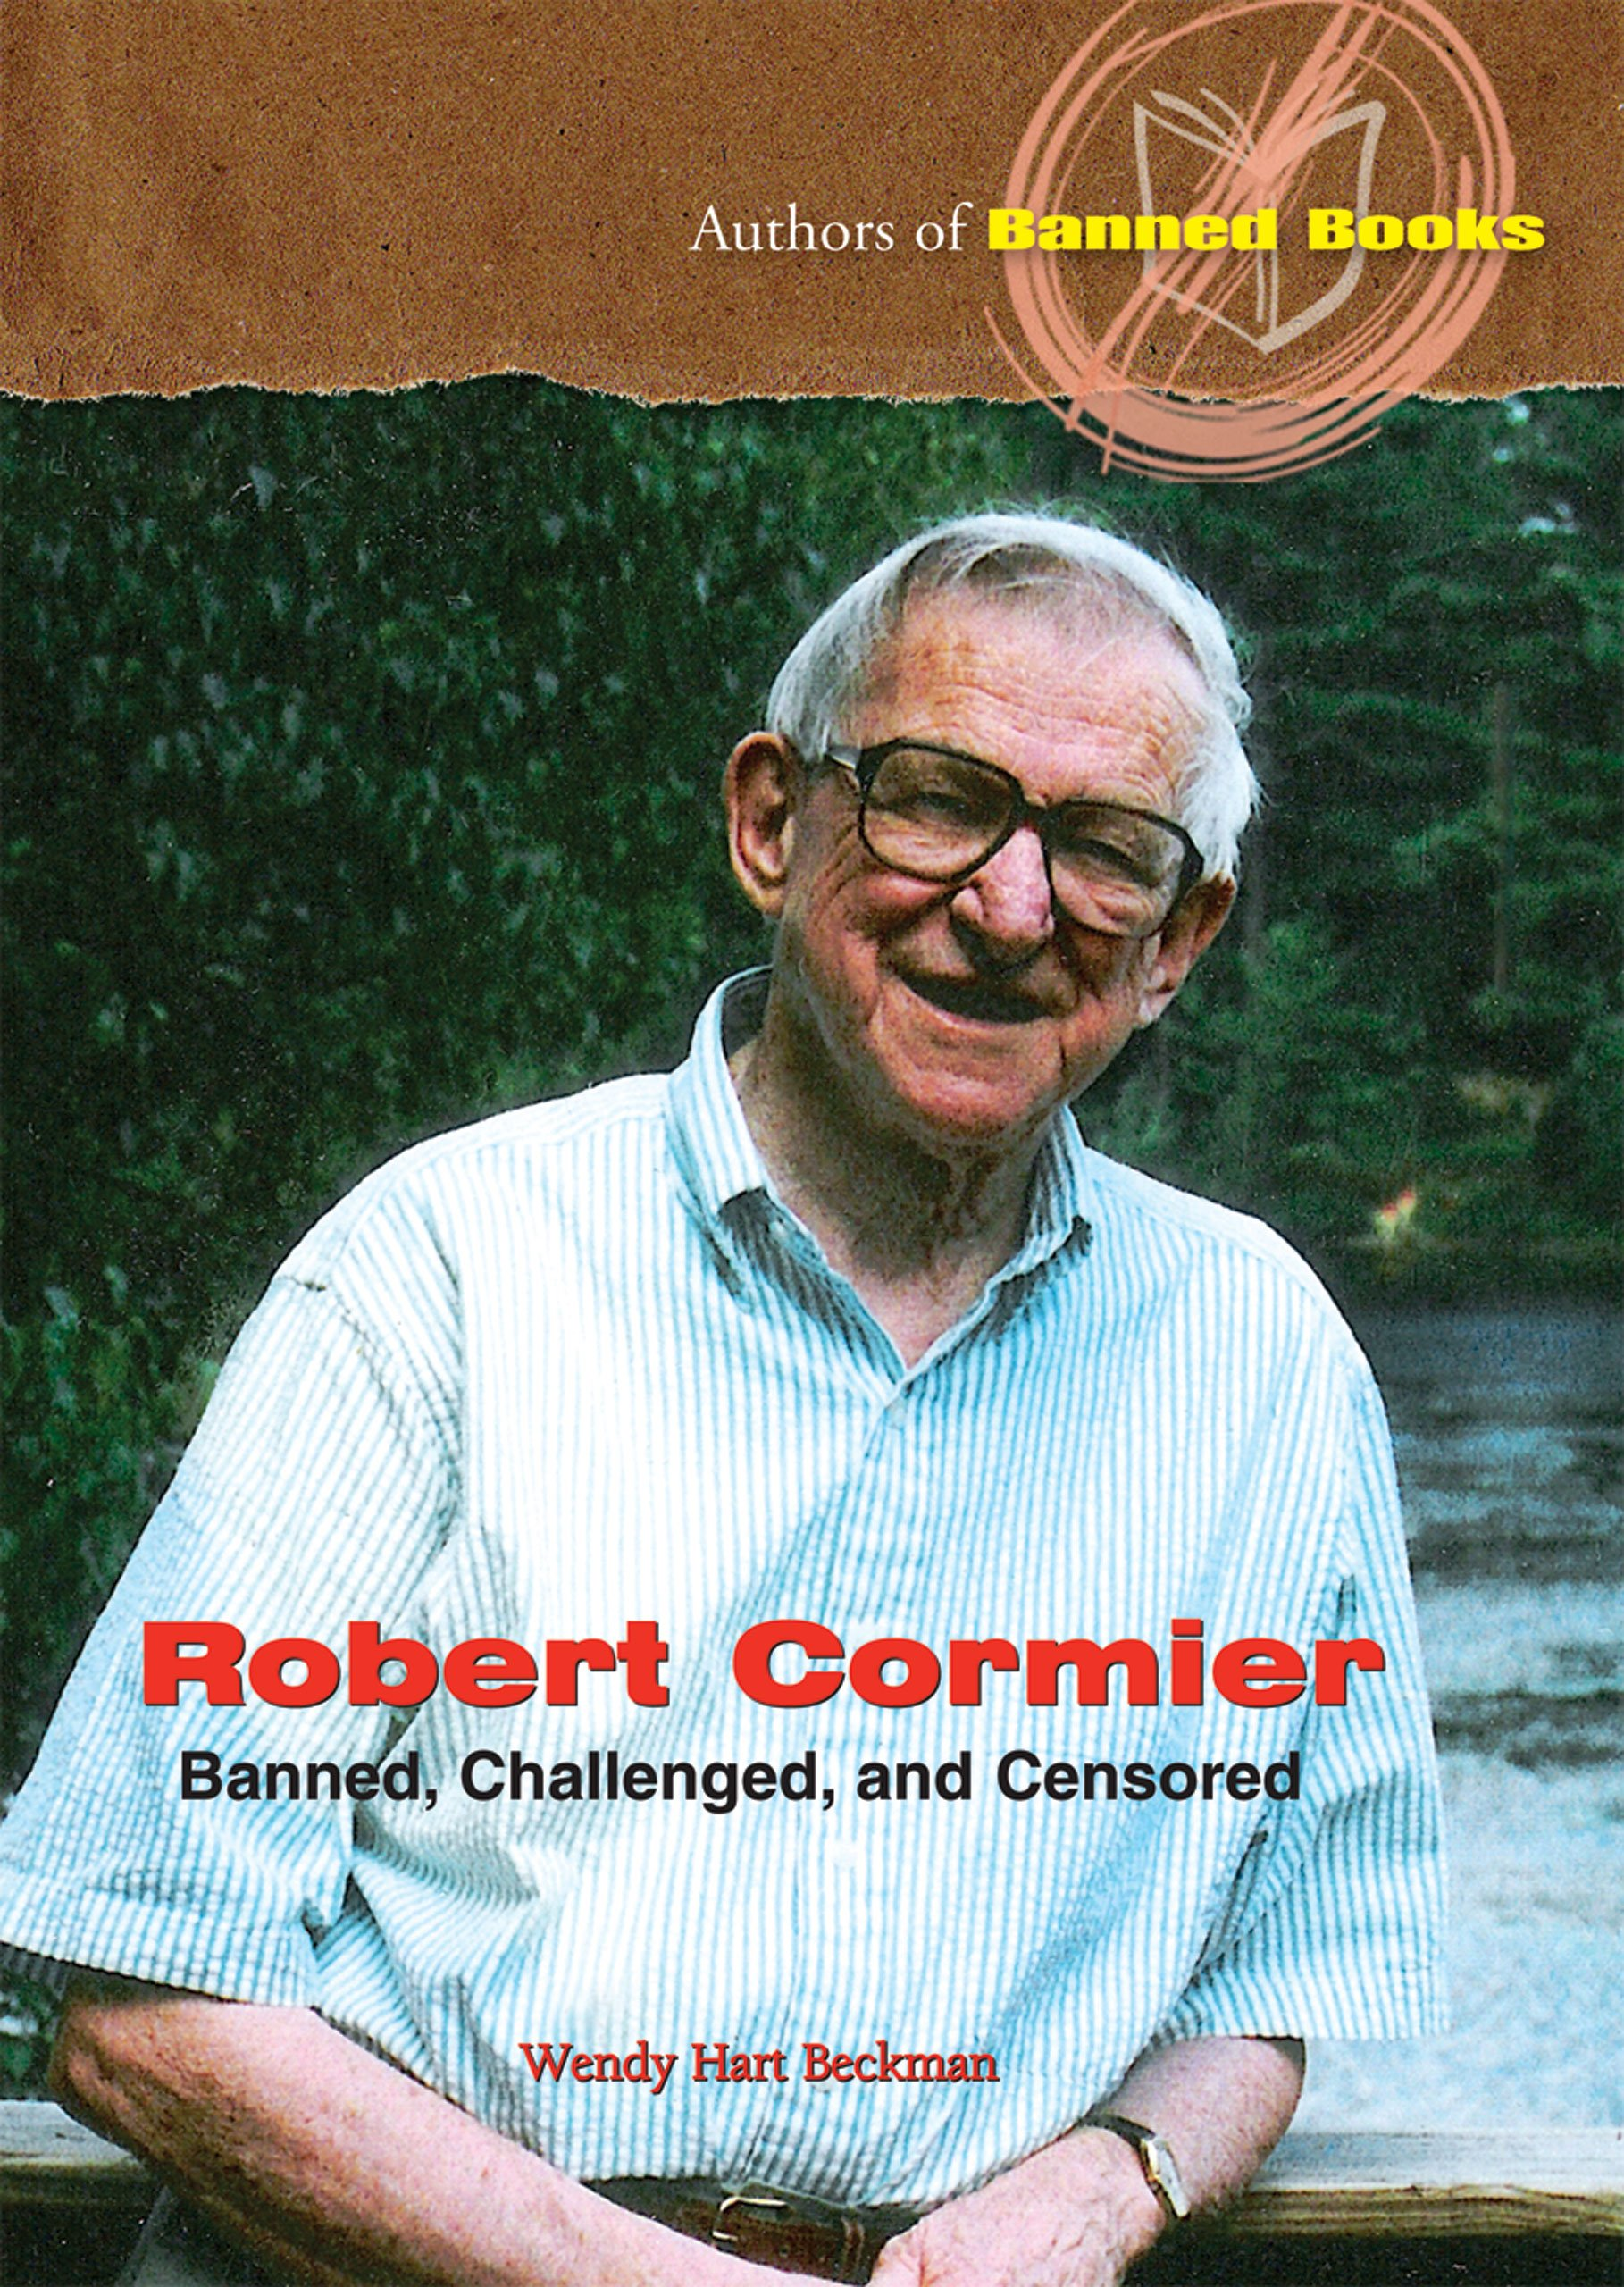 Robert Cormier: Banned, Challenged, and Censored (Authors of Banned Books)